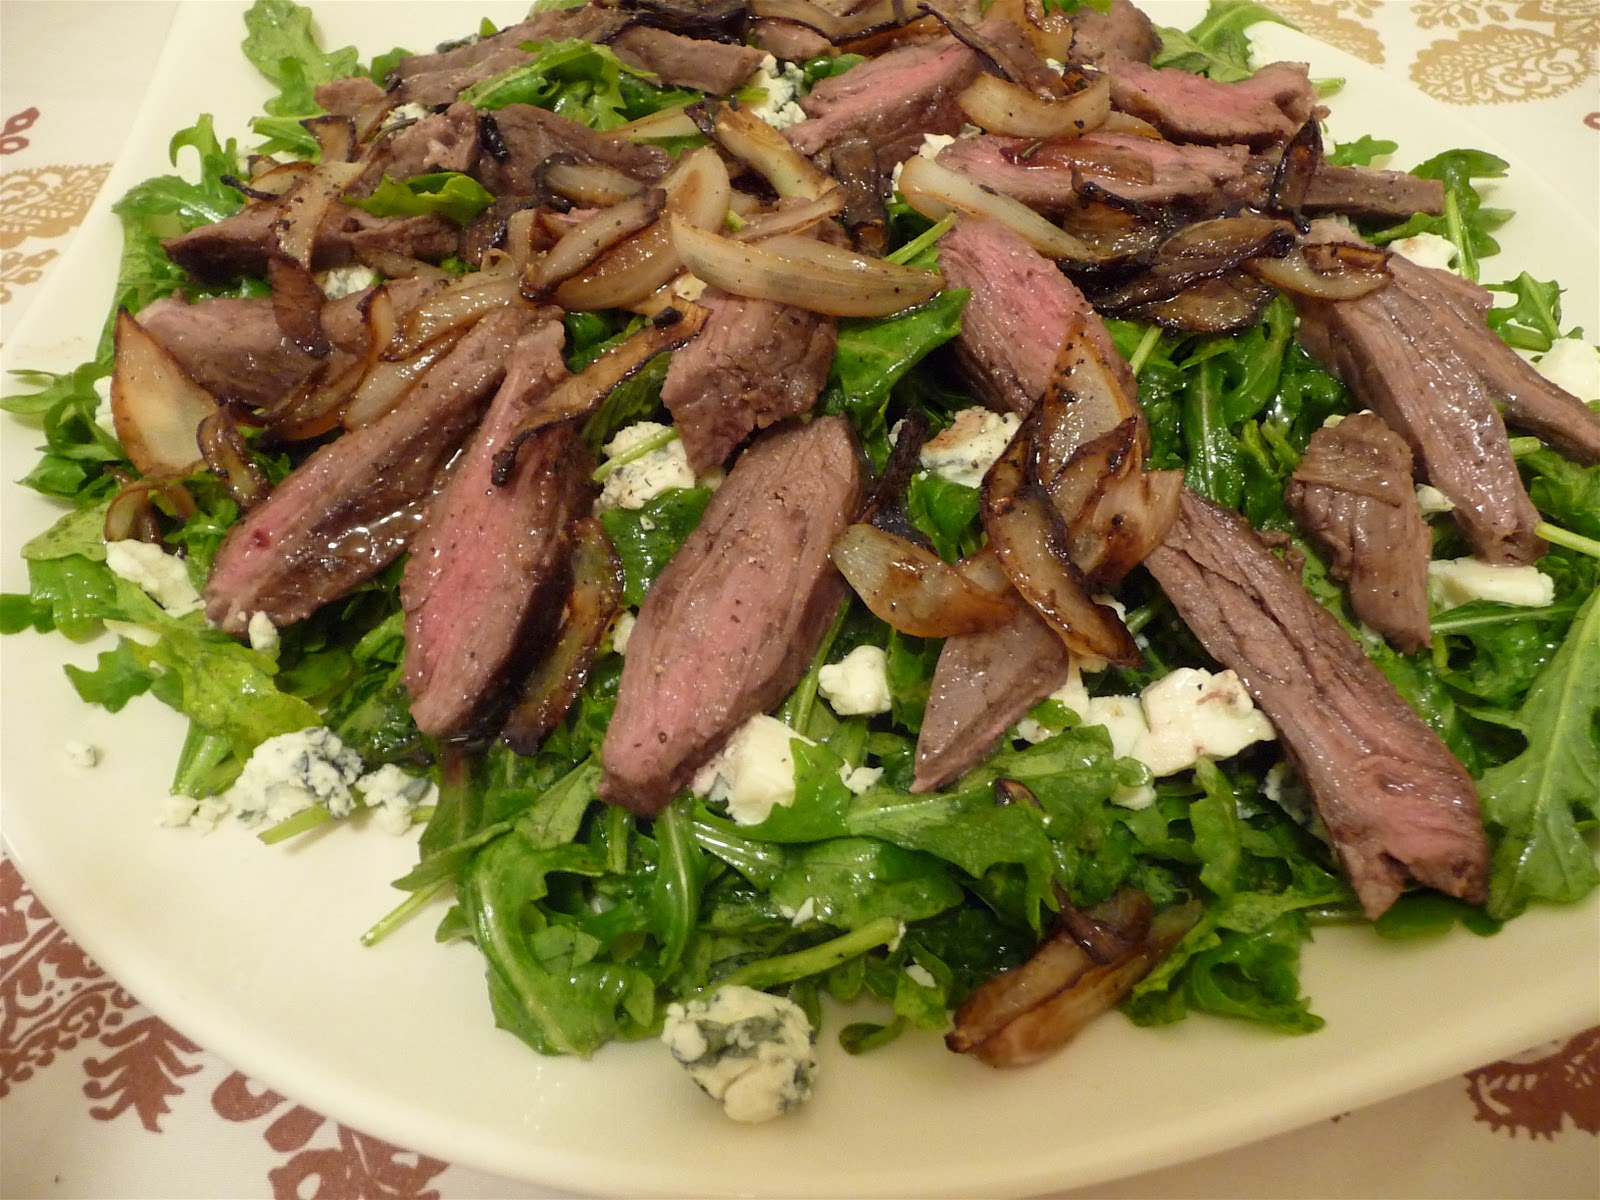 Steak salad with blue cheese and sauteed onions